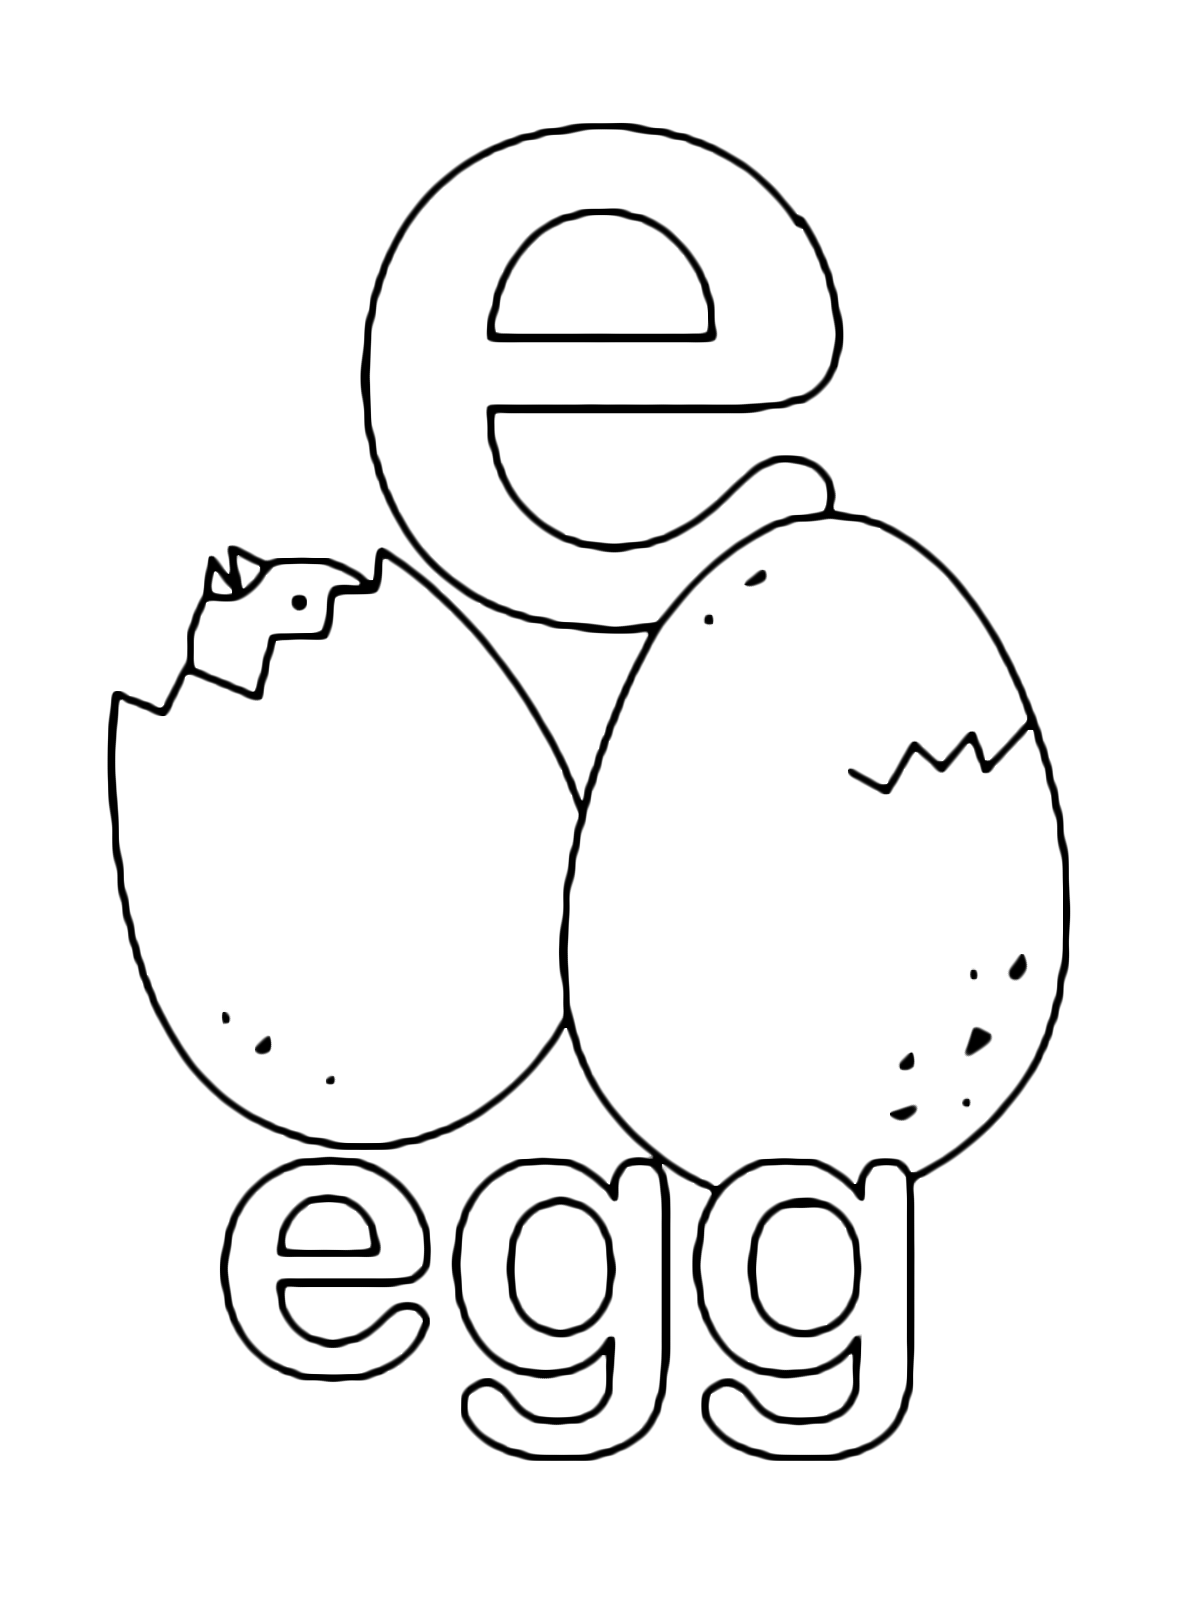 e for coloring letter e with plants coloring page free printable for coloring e